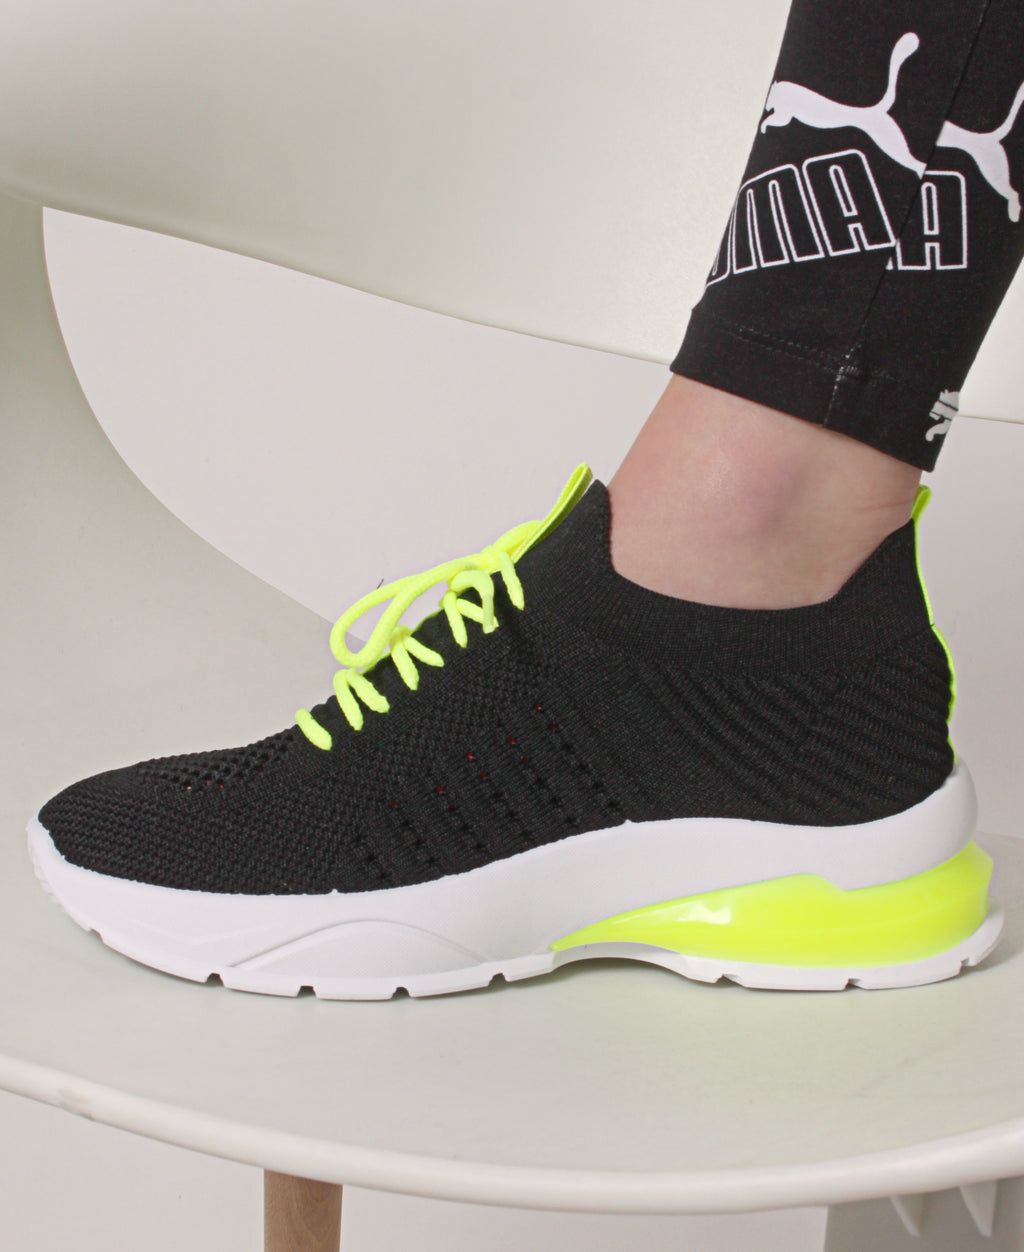 Ladies' Neon Lightweight Sneakers - Black-Yellow